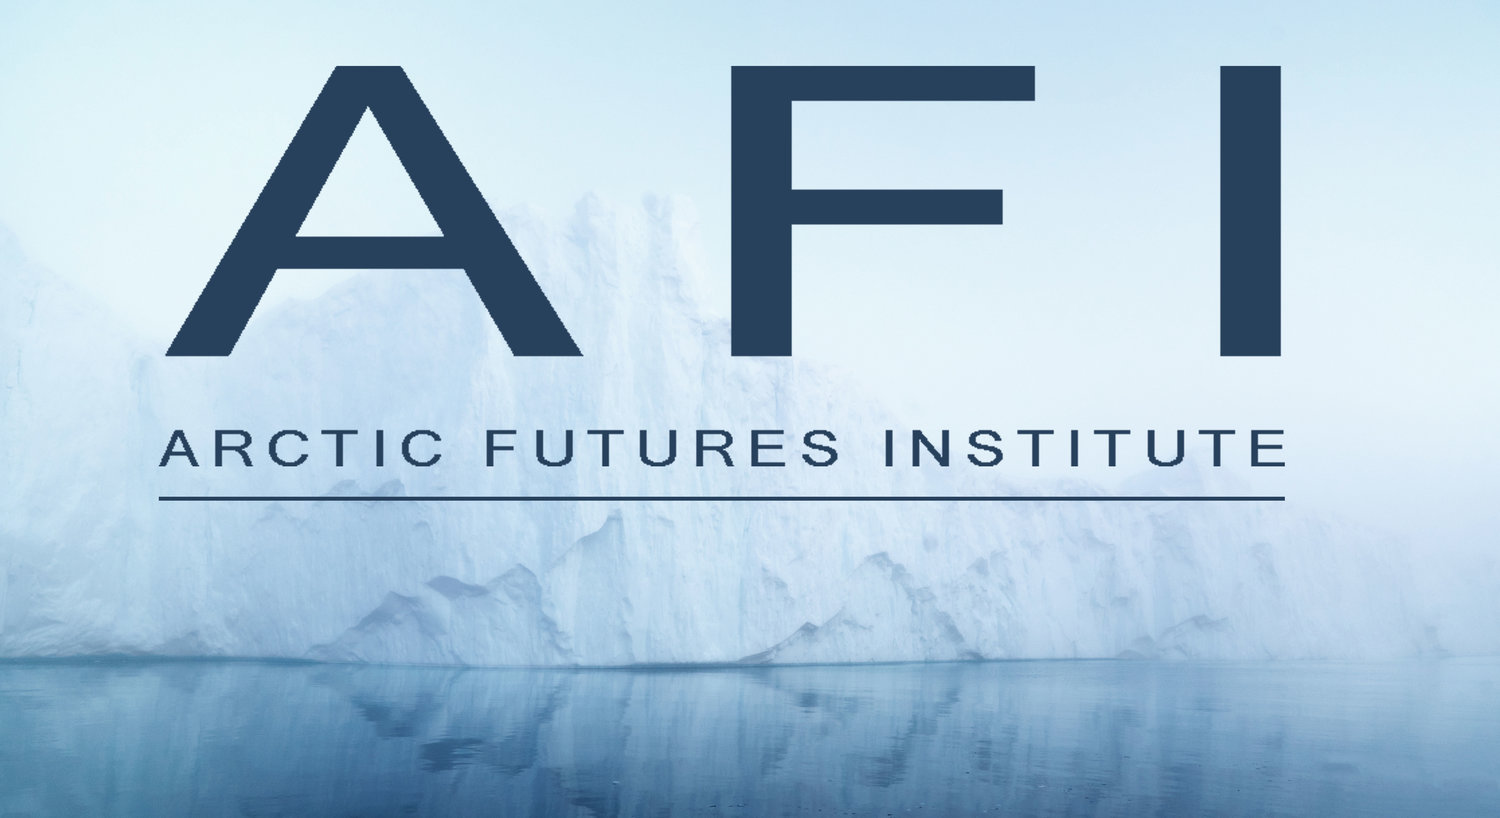 Arctic Futures Institute